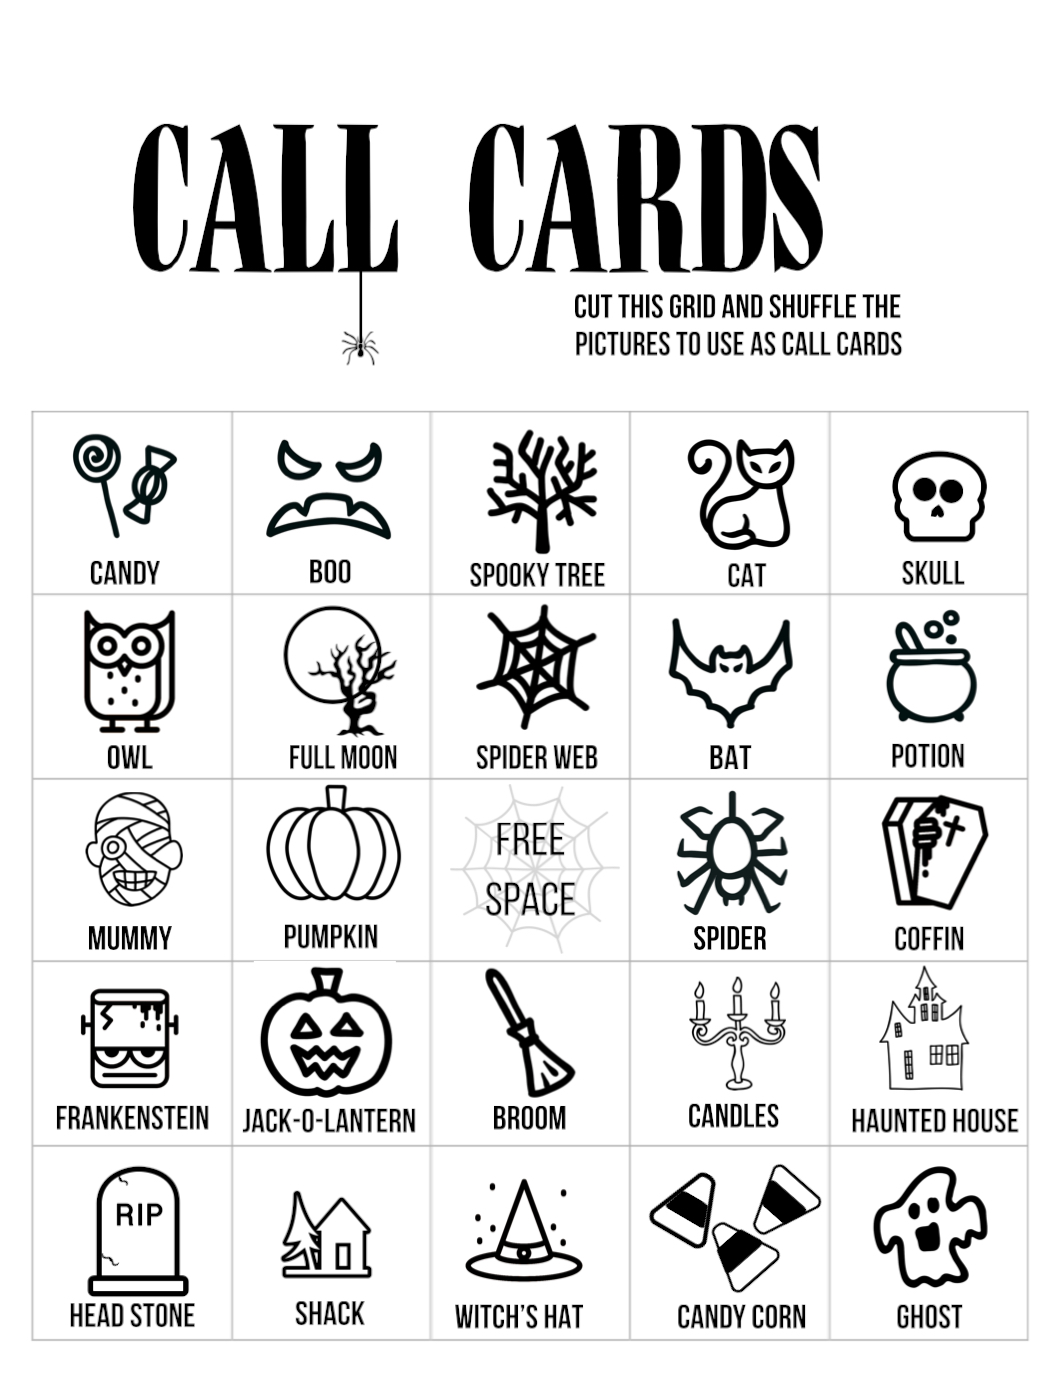 Invaluable image with halloween printable games